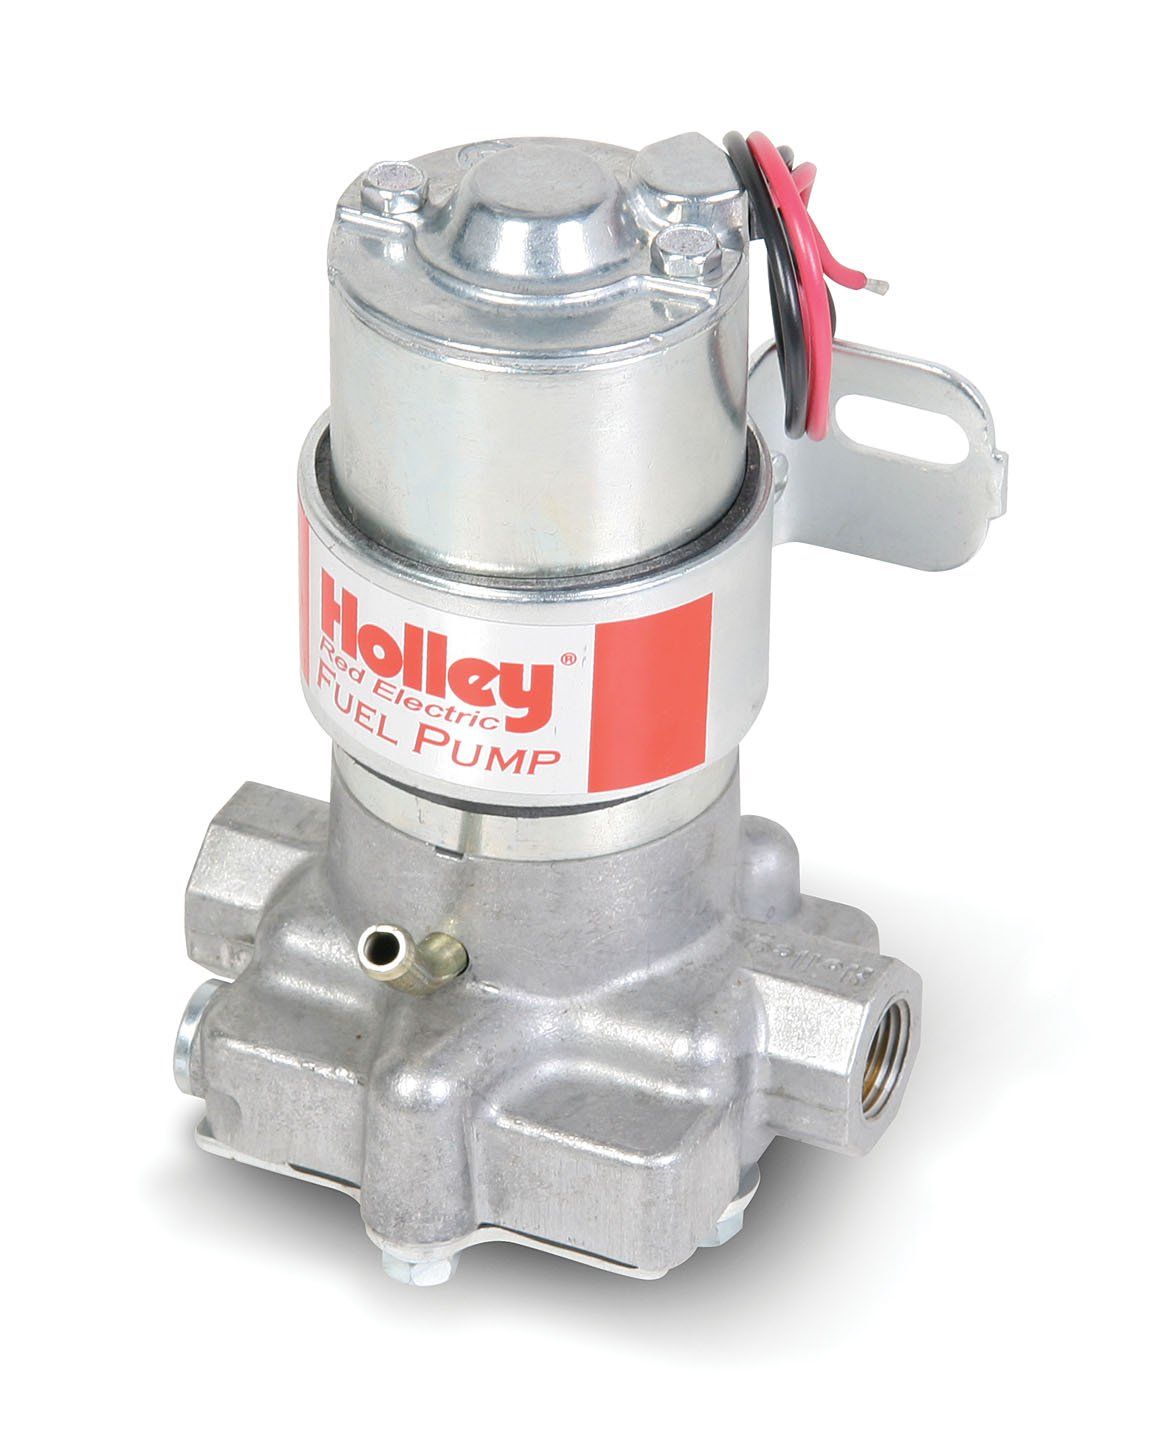 712-801-1 - 97 gph red� electric fuel pump image